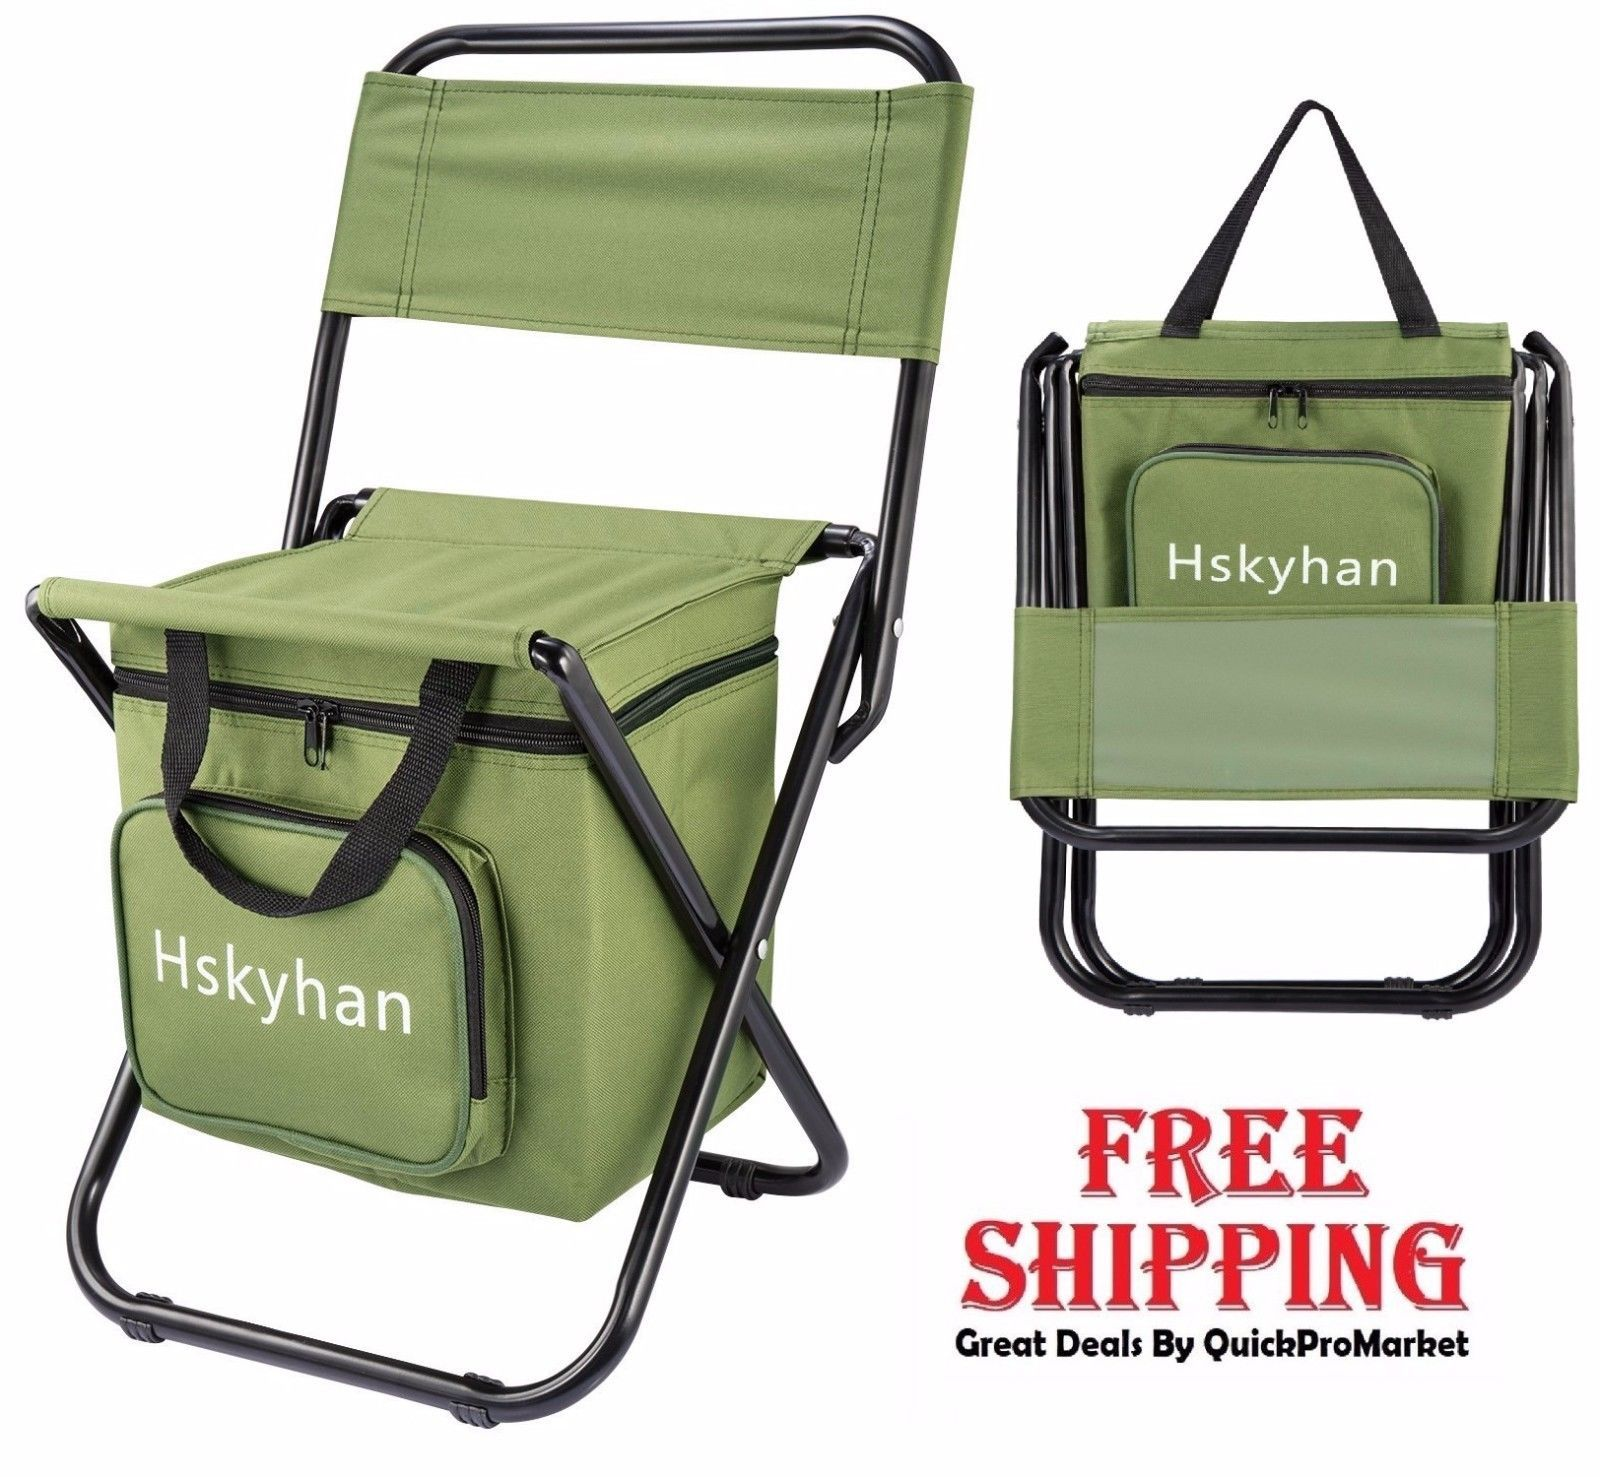 fishing cooler chair 3d massage portable folding camping with outdoor beach hiking stool